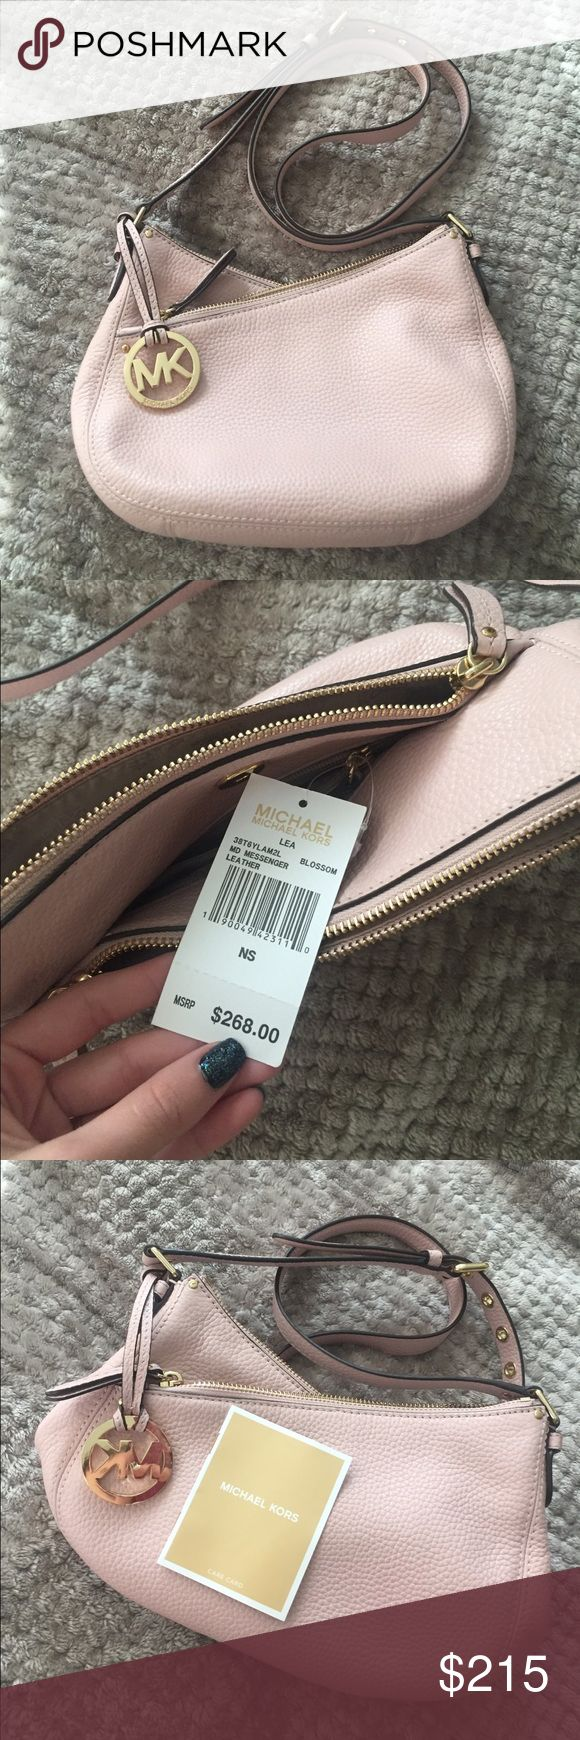 Michael Kors bag Obviously never used (NWT). Genuine leather and amazing condition. Didn't come with a dustbag, but willing to throw in one of my own. Color blossom. Much less on Ⓜ️er (and free ship) KORS Michael Kors Bags Crossbody Bags